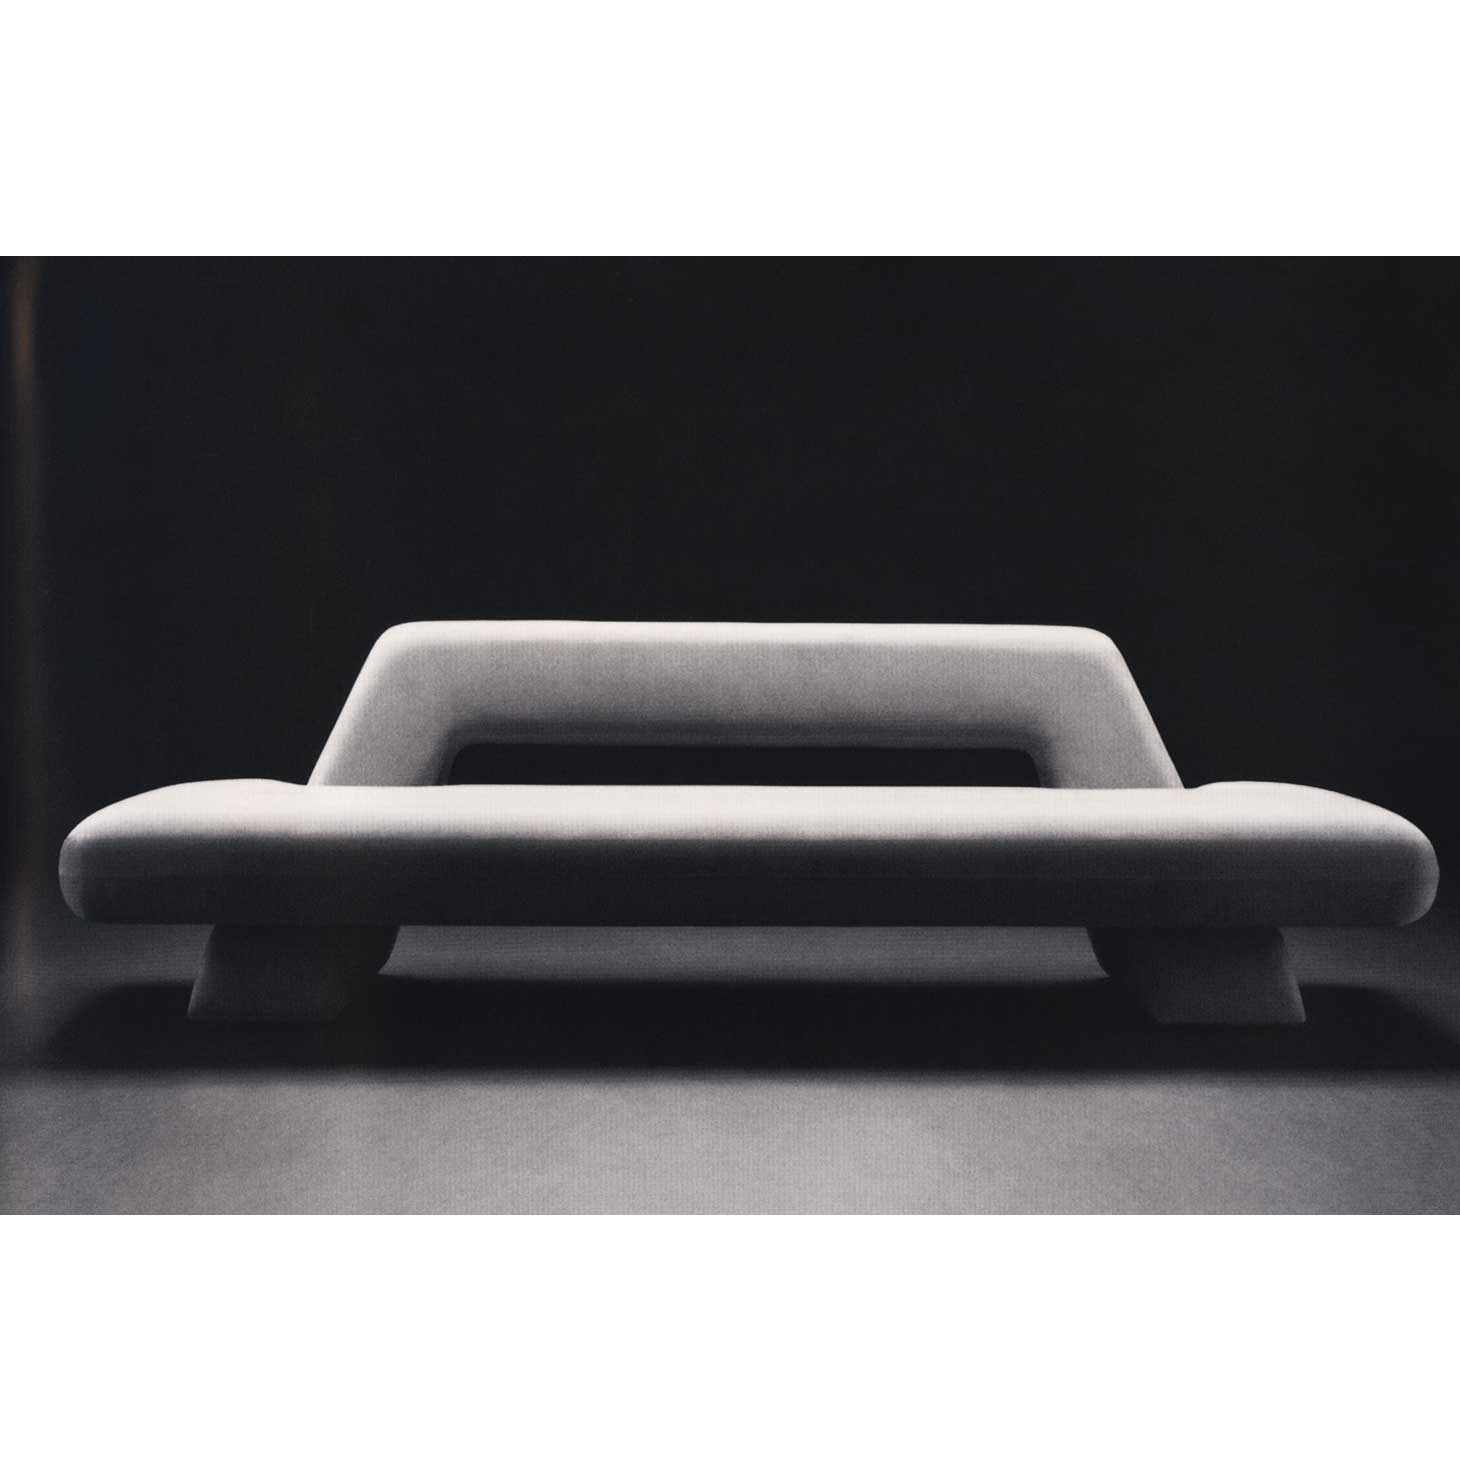 Harvey Probber Mayan sofa